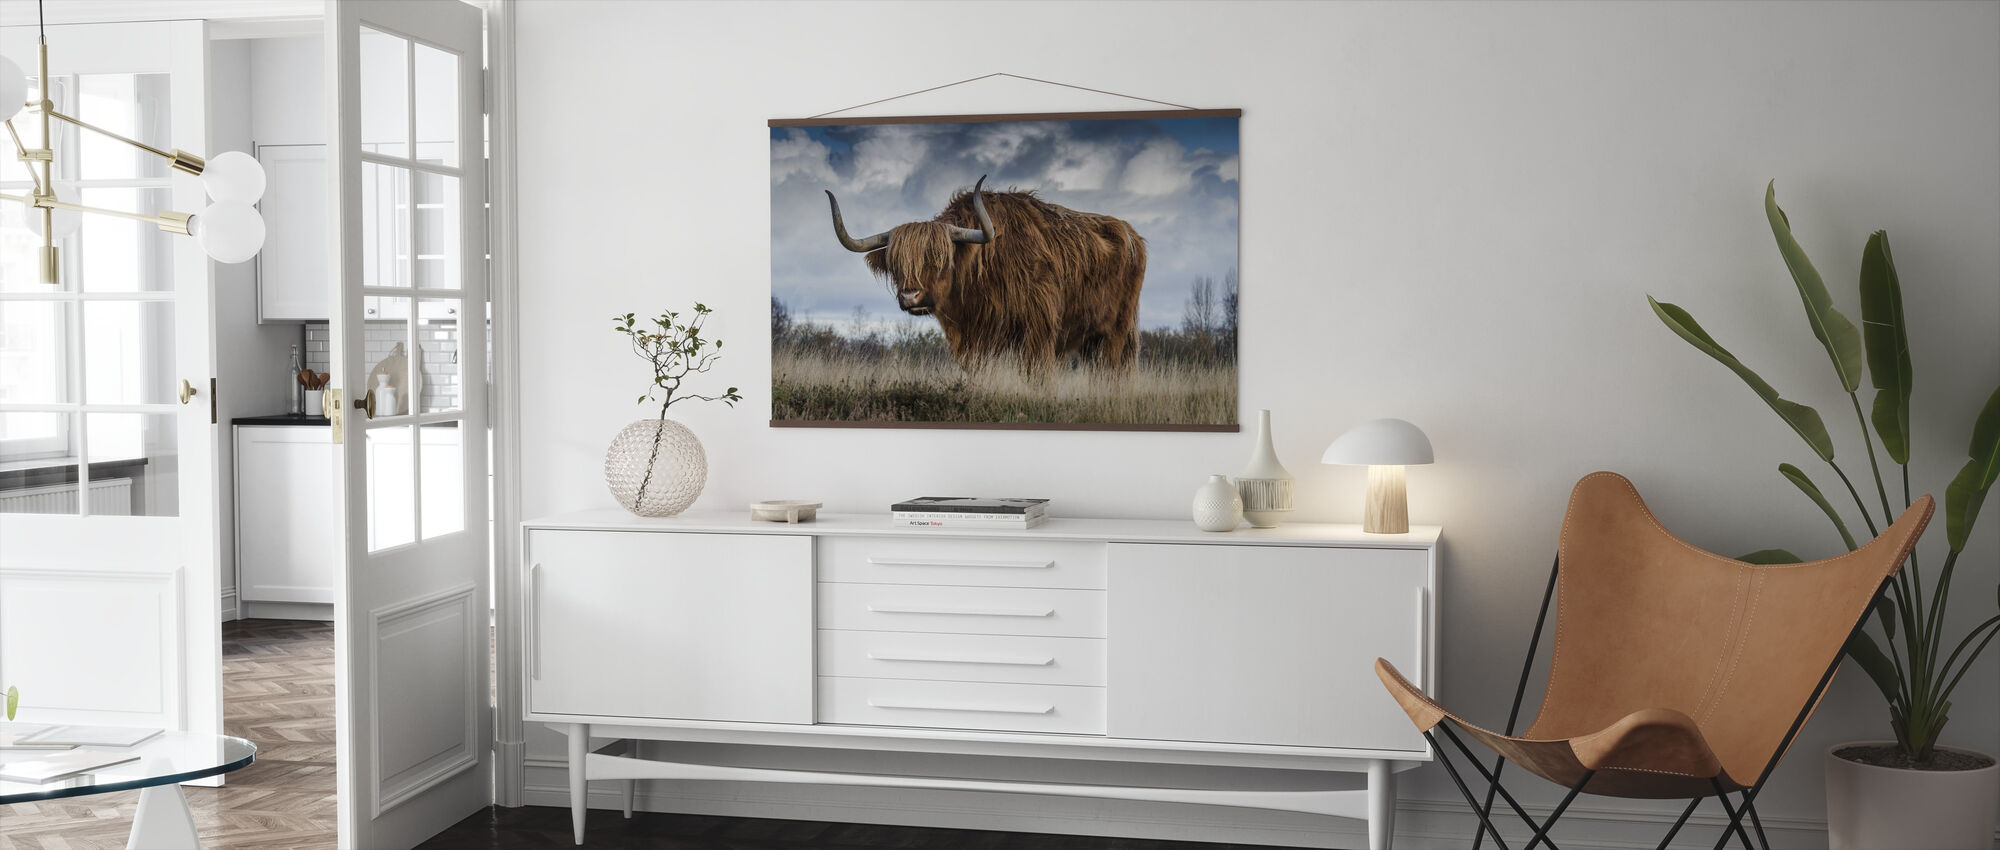 Bull Grazing in the Meadow - Poster - Living Room